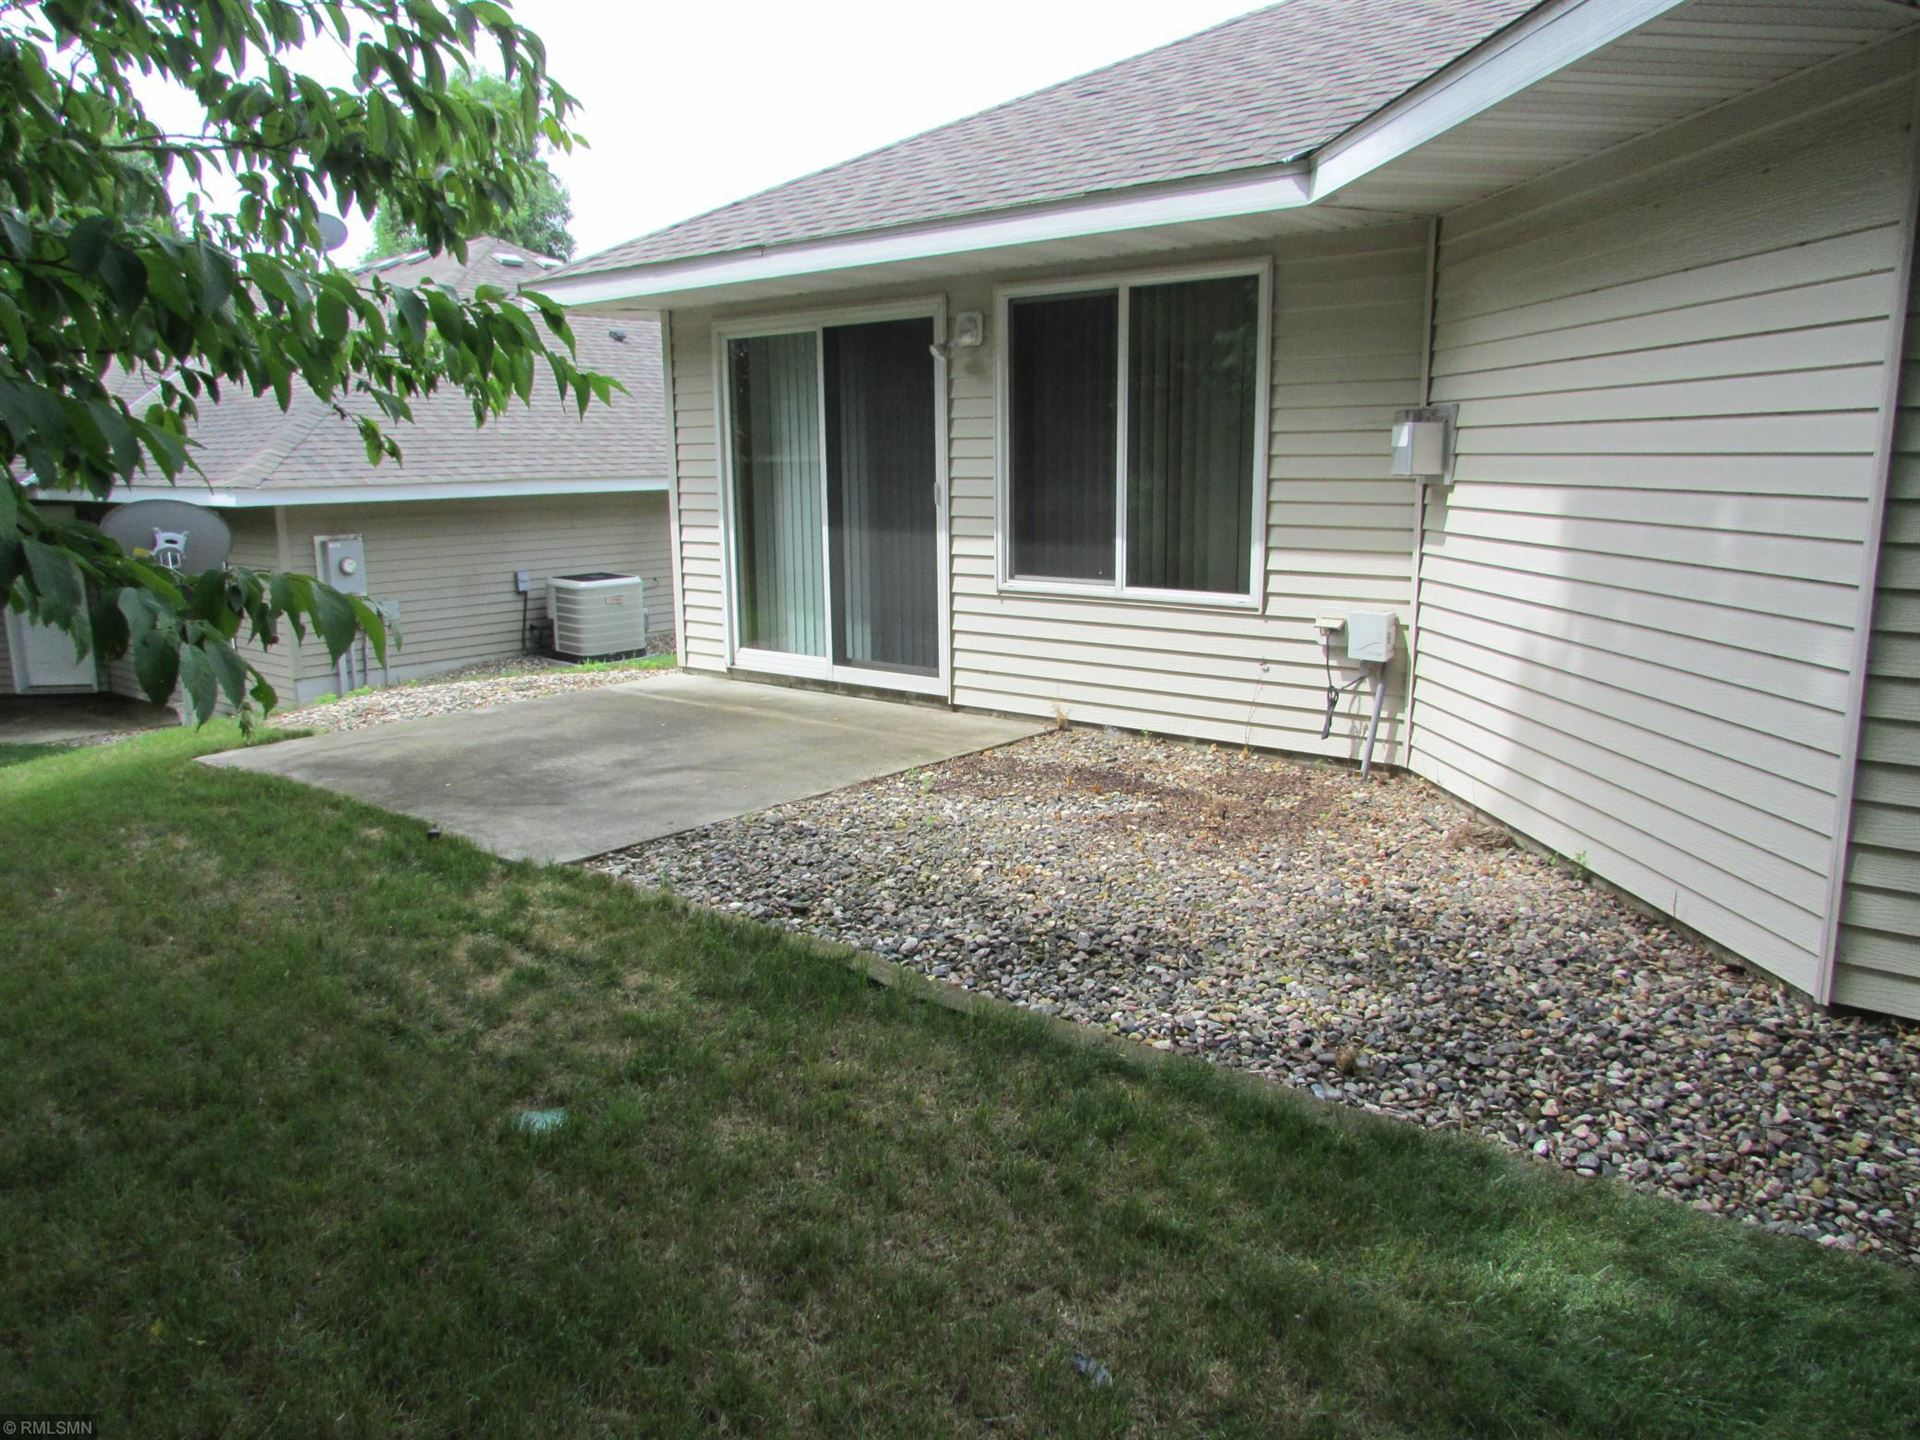 Photo of 508 14th Avenue S, Cold Spring, MN 56320 (MLS # 5619132)